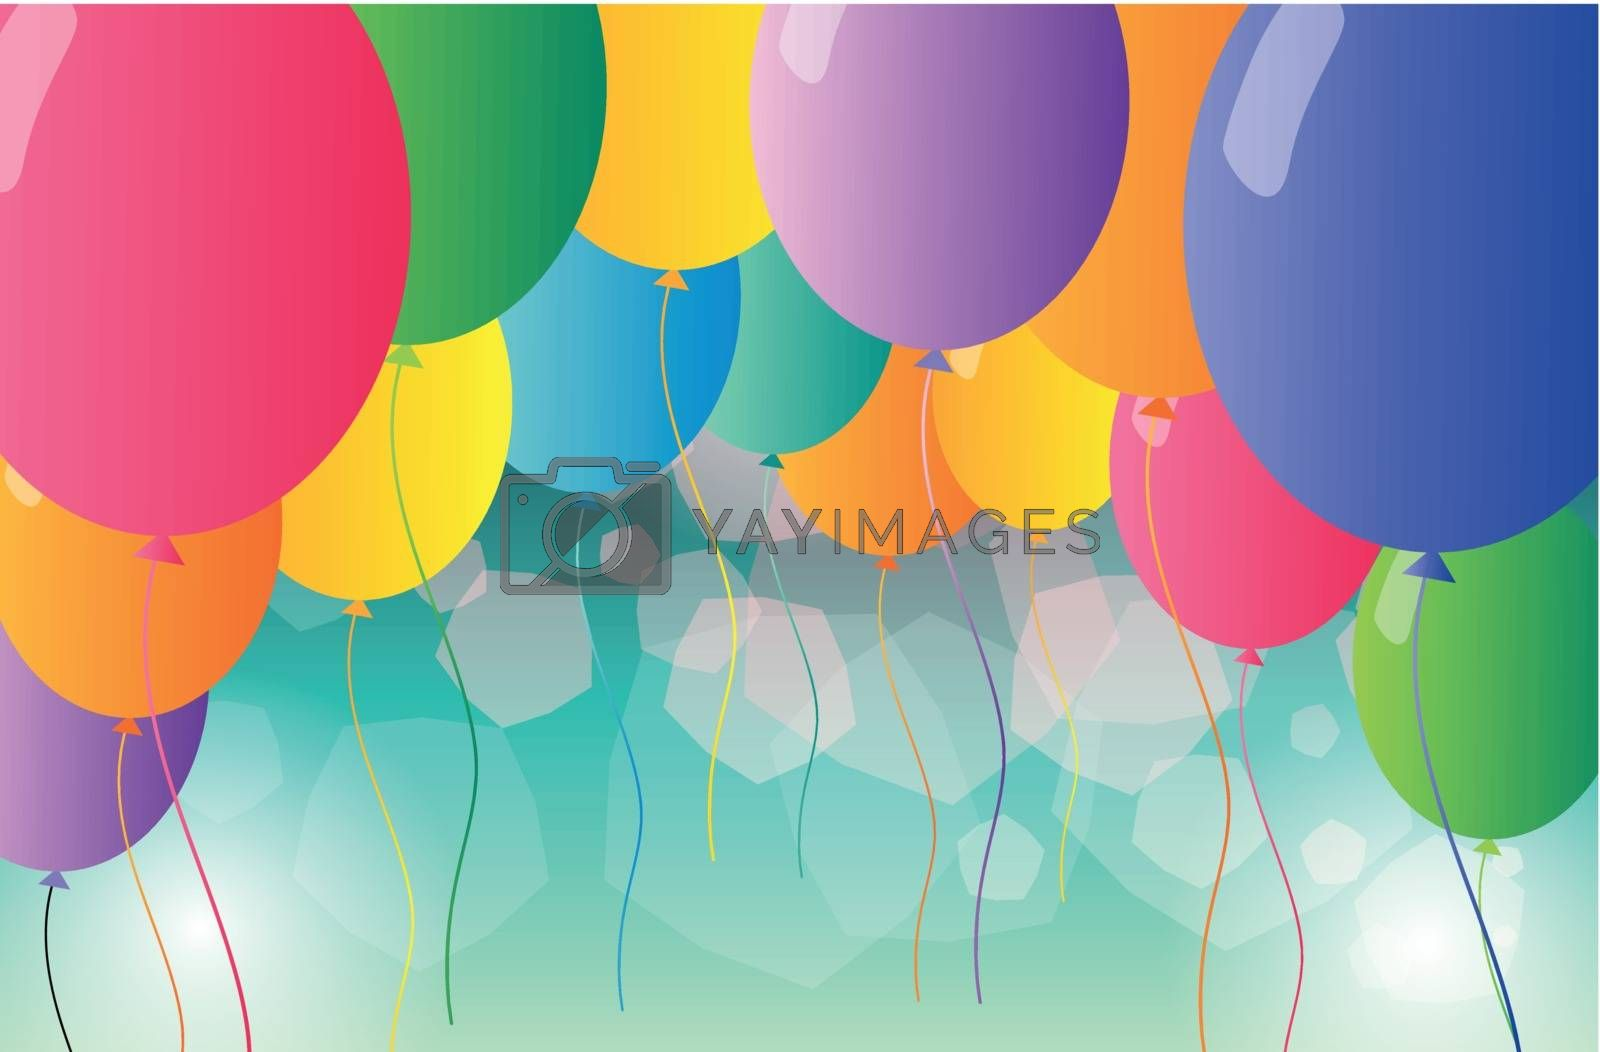 Illustration of a group of colorful balloons